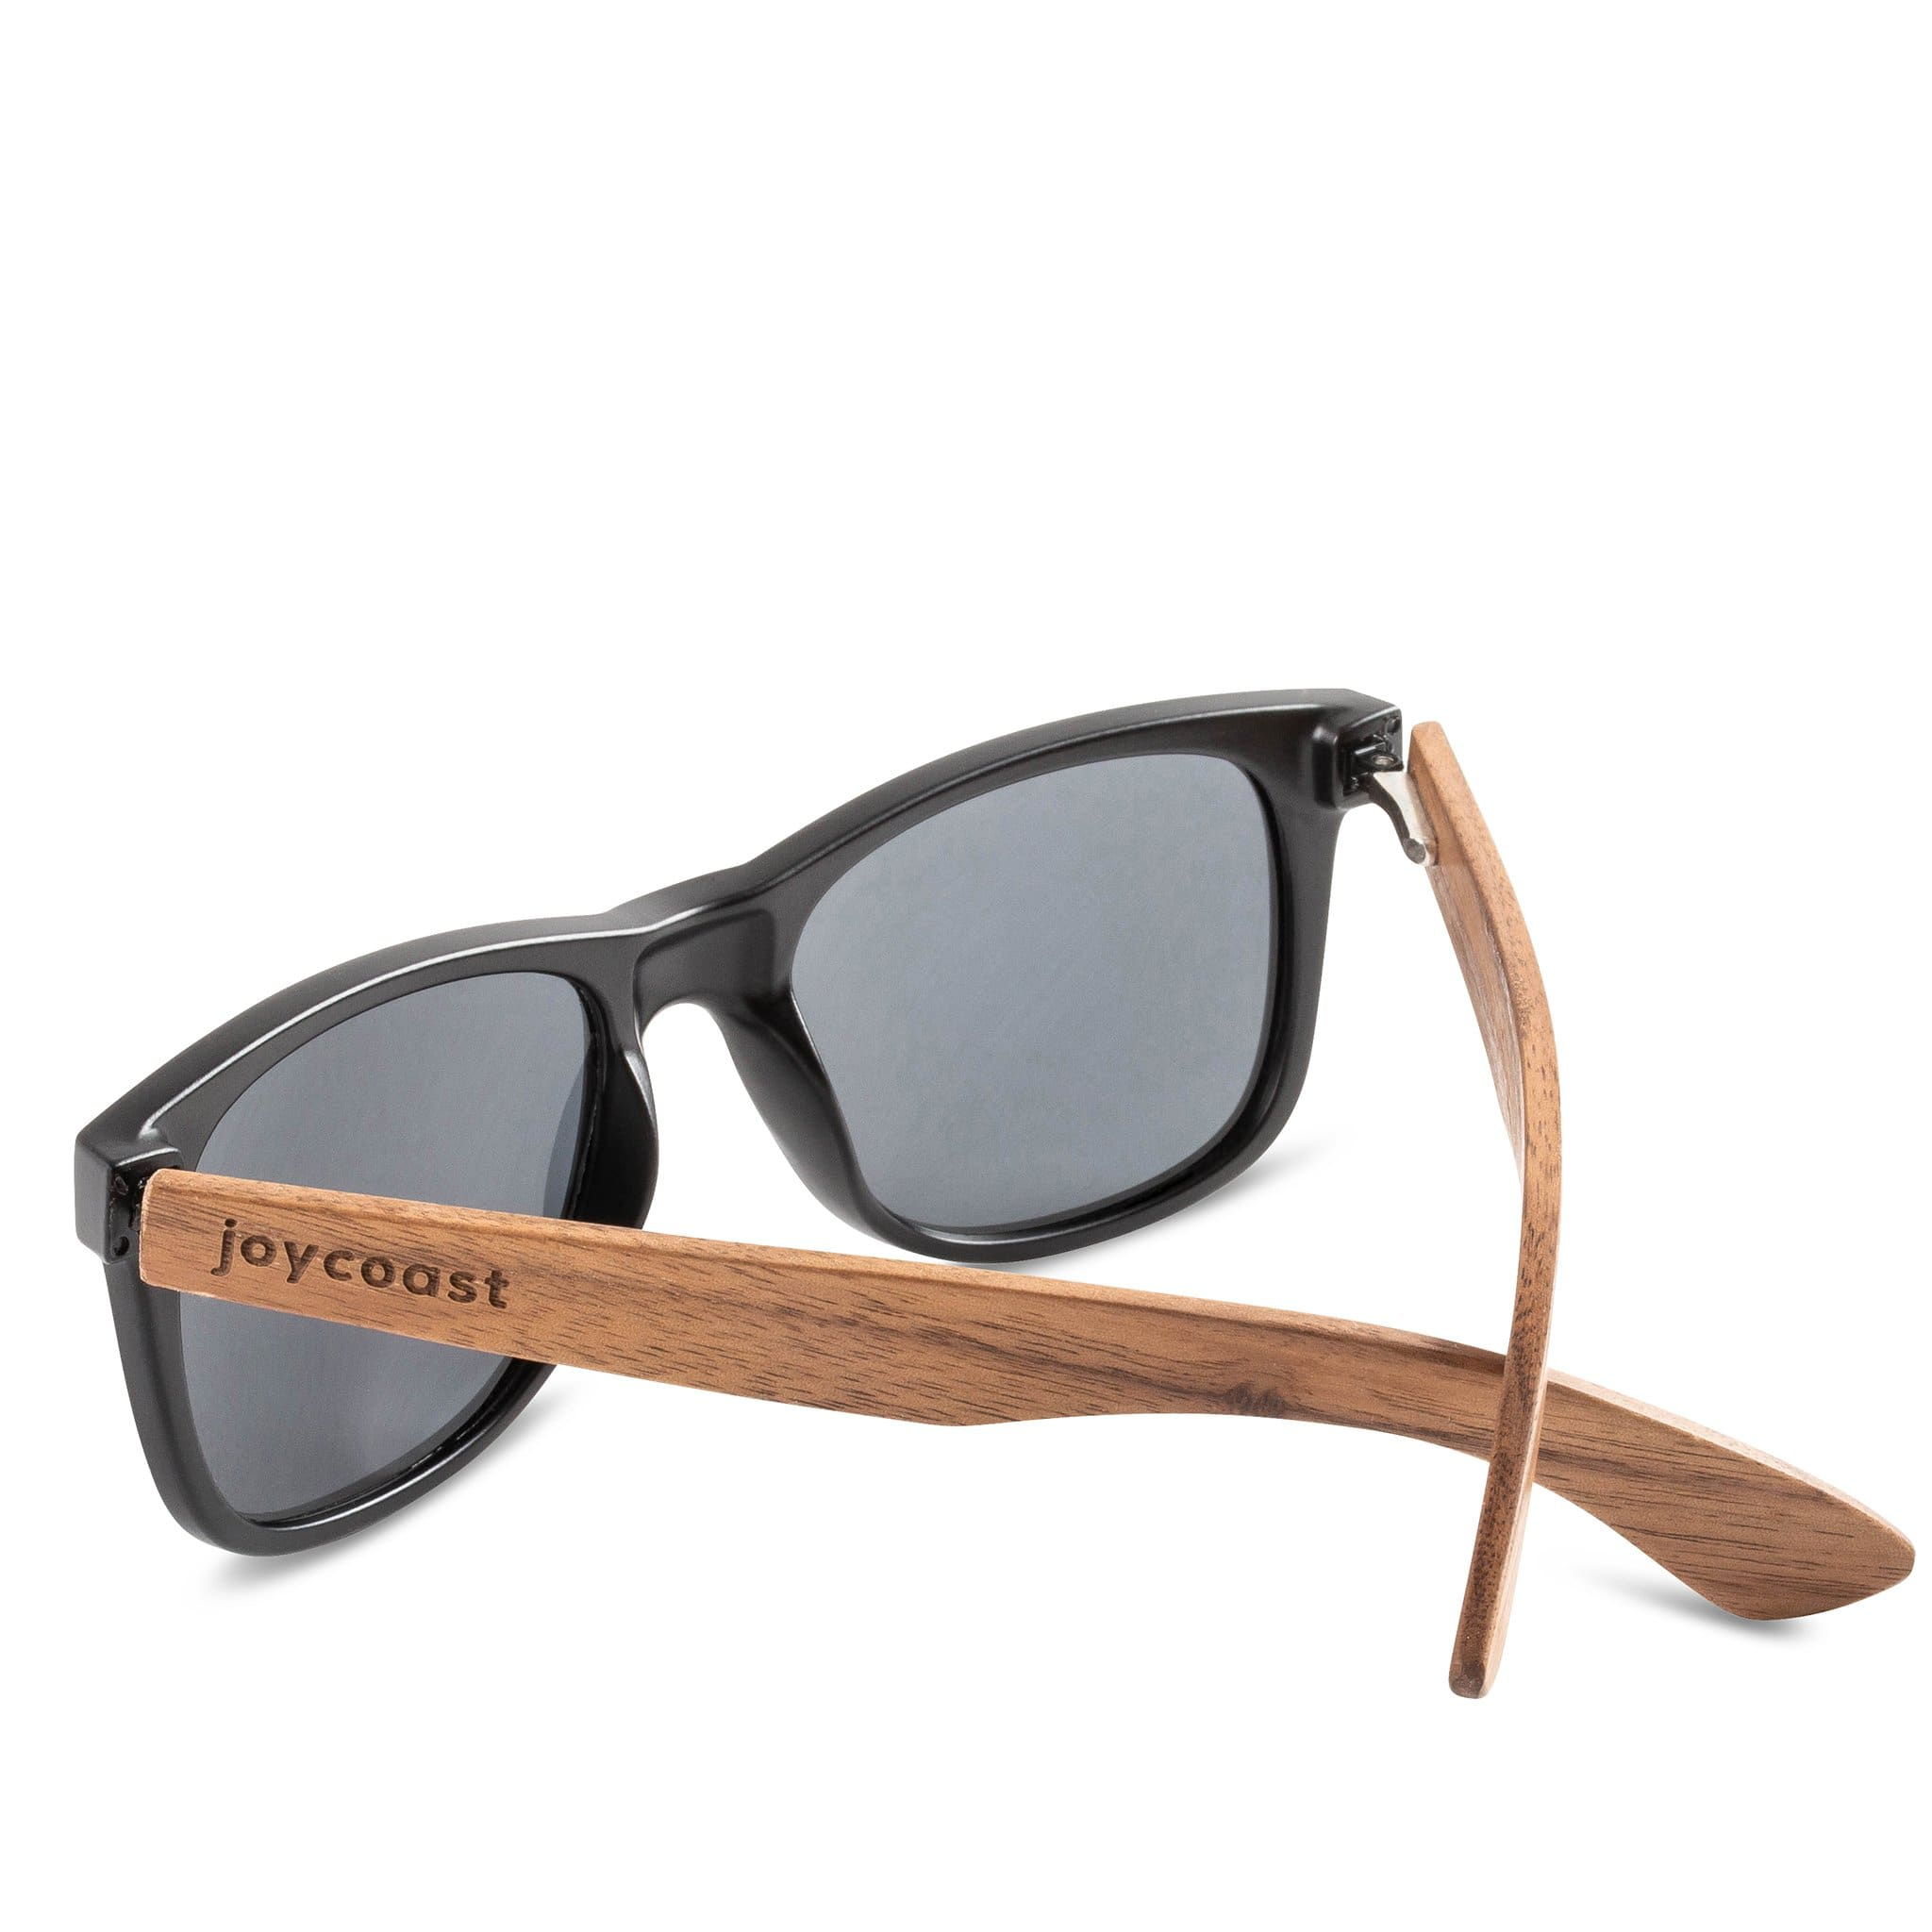 Wooden Sunglasses | Mozz - Wooden Watches and Sunglasses - Joycoast